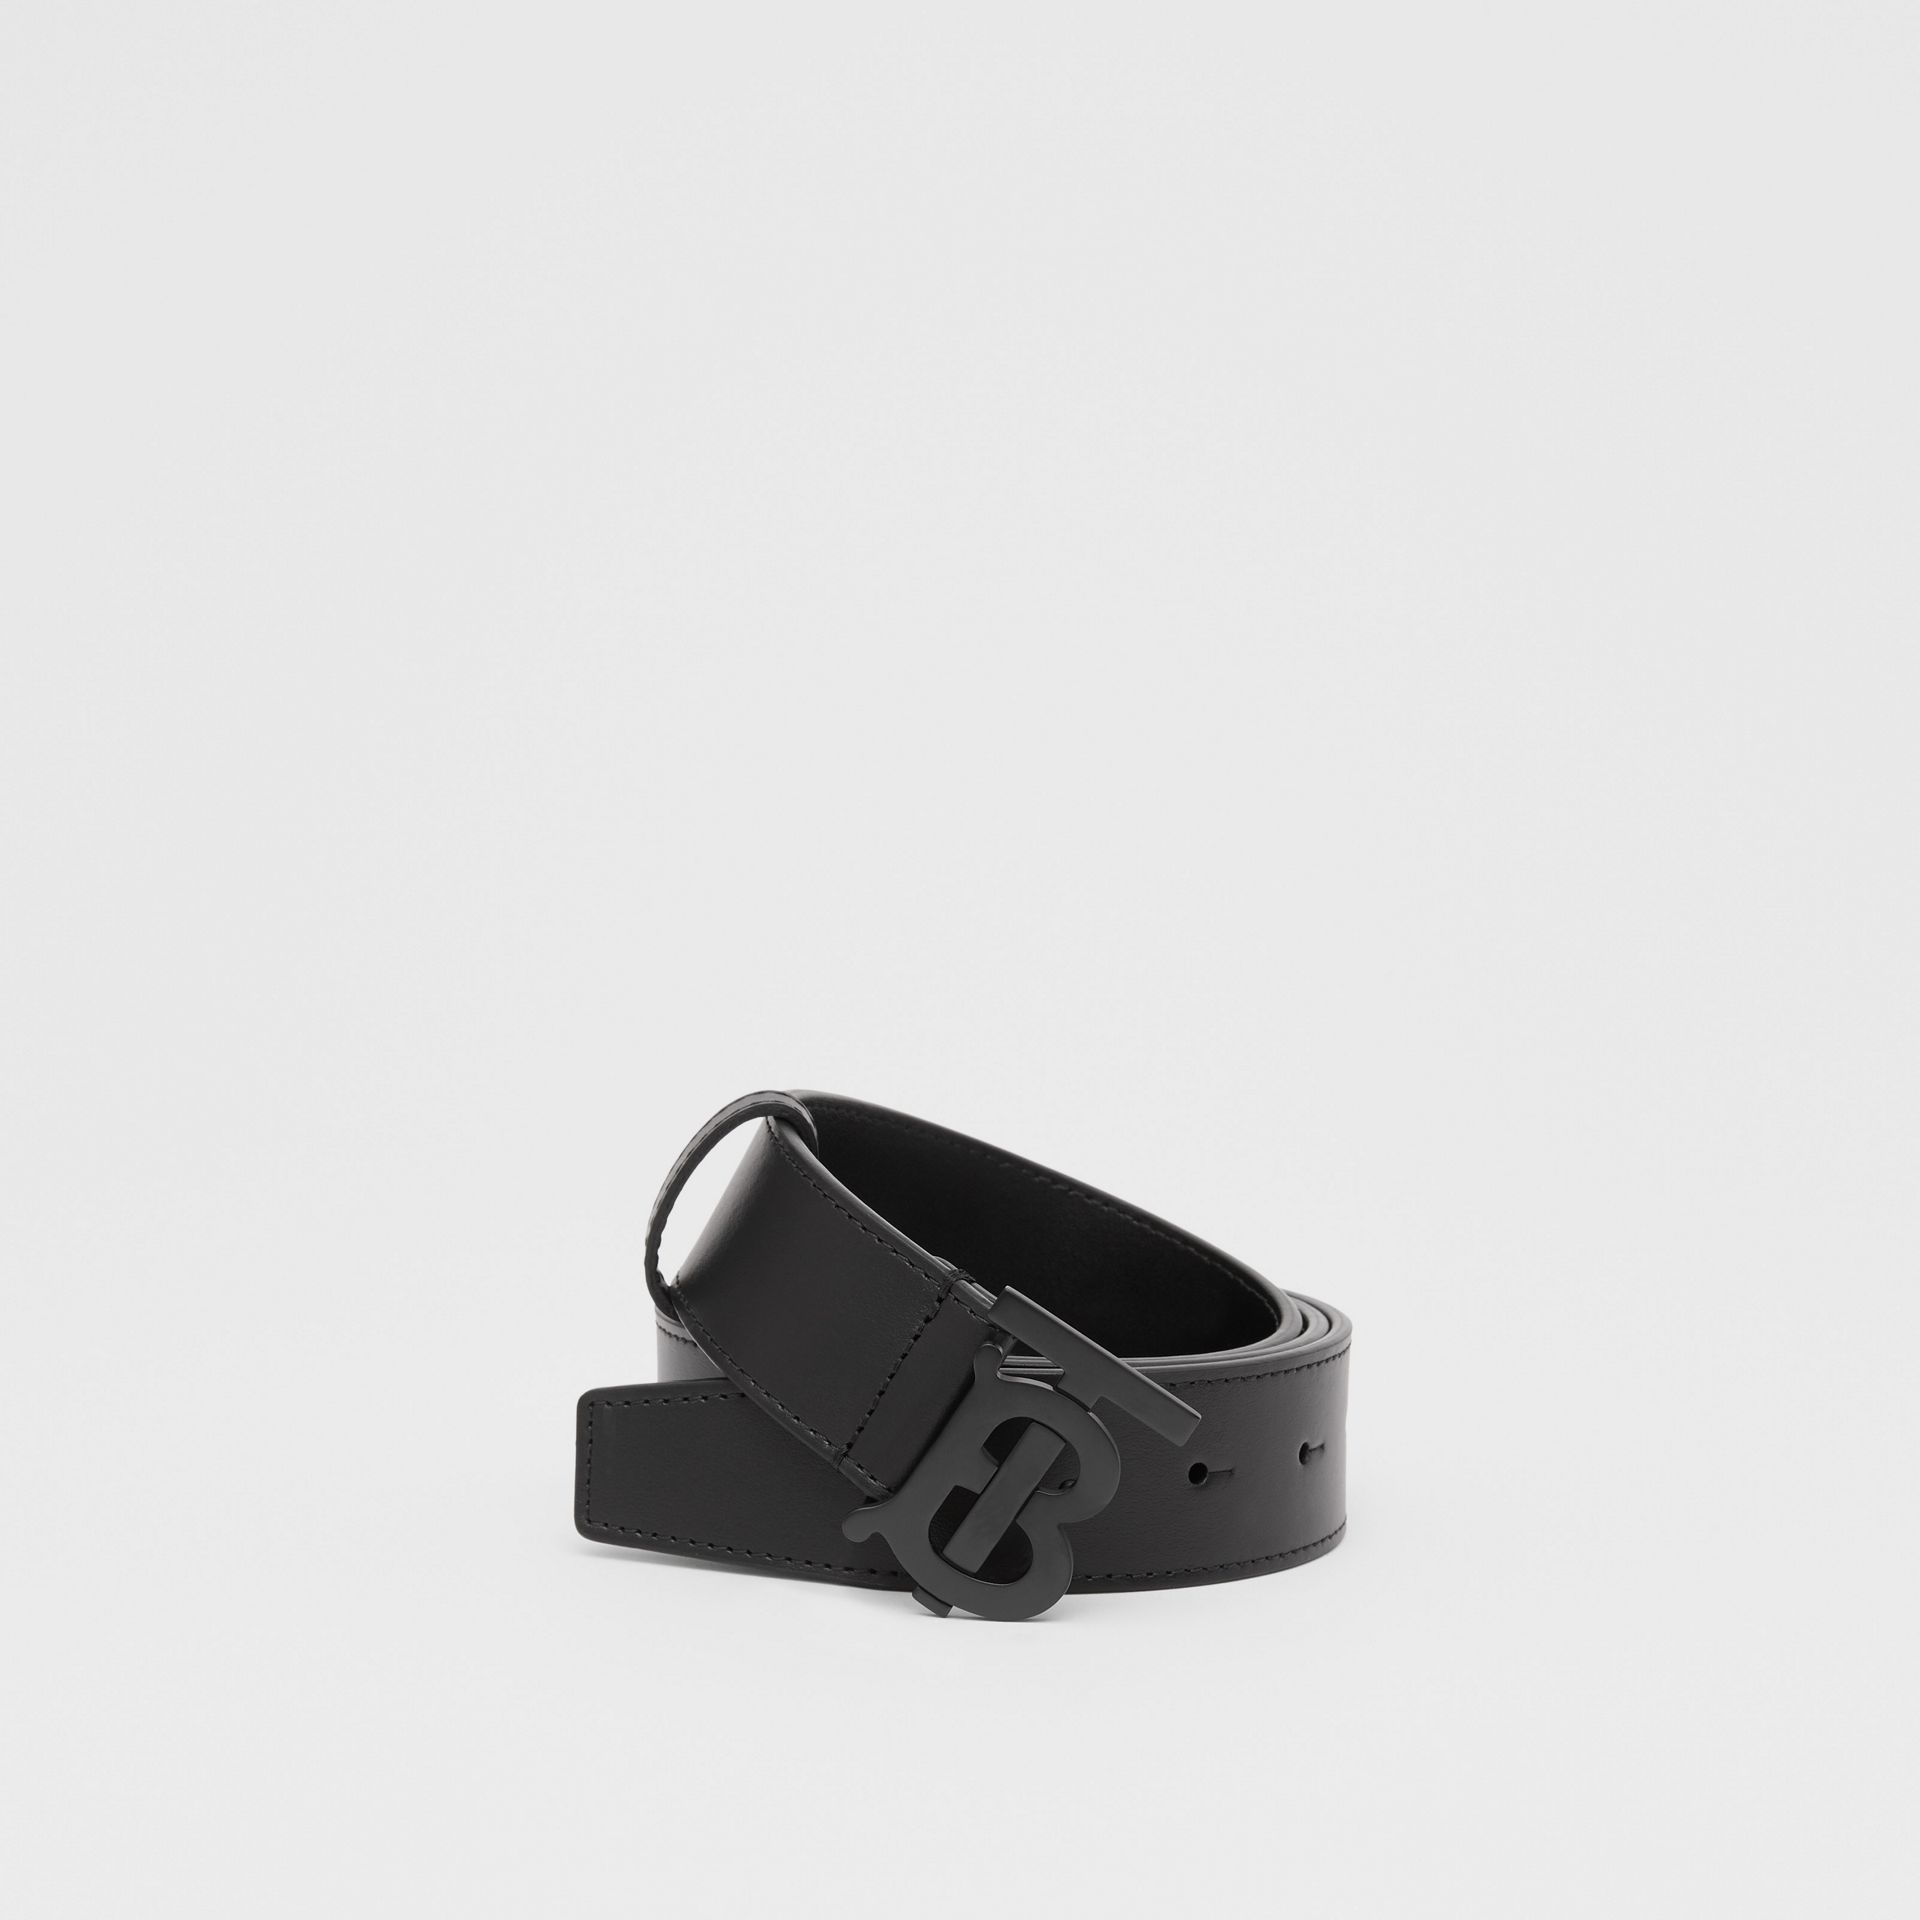 Matte Monogram Motif Leather Belt in Black - Men | Burberry United States - gallery image 0